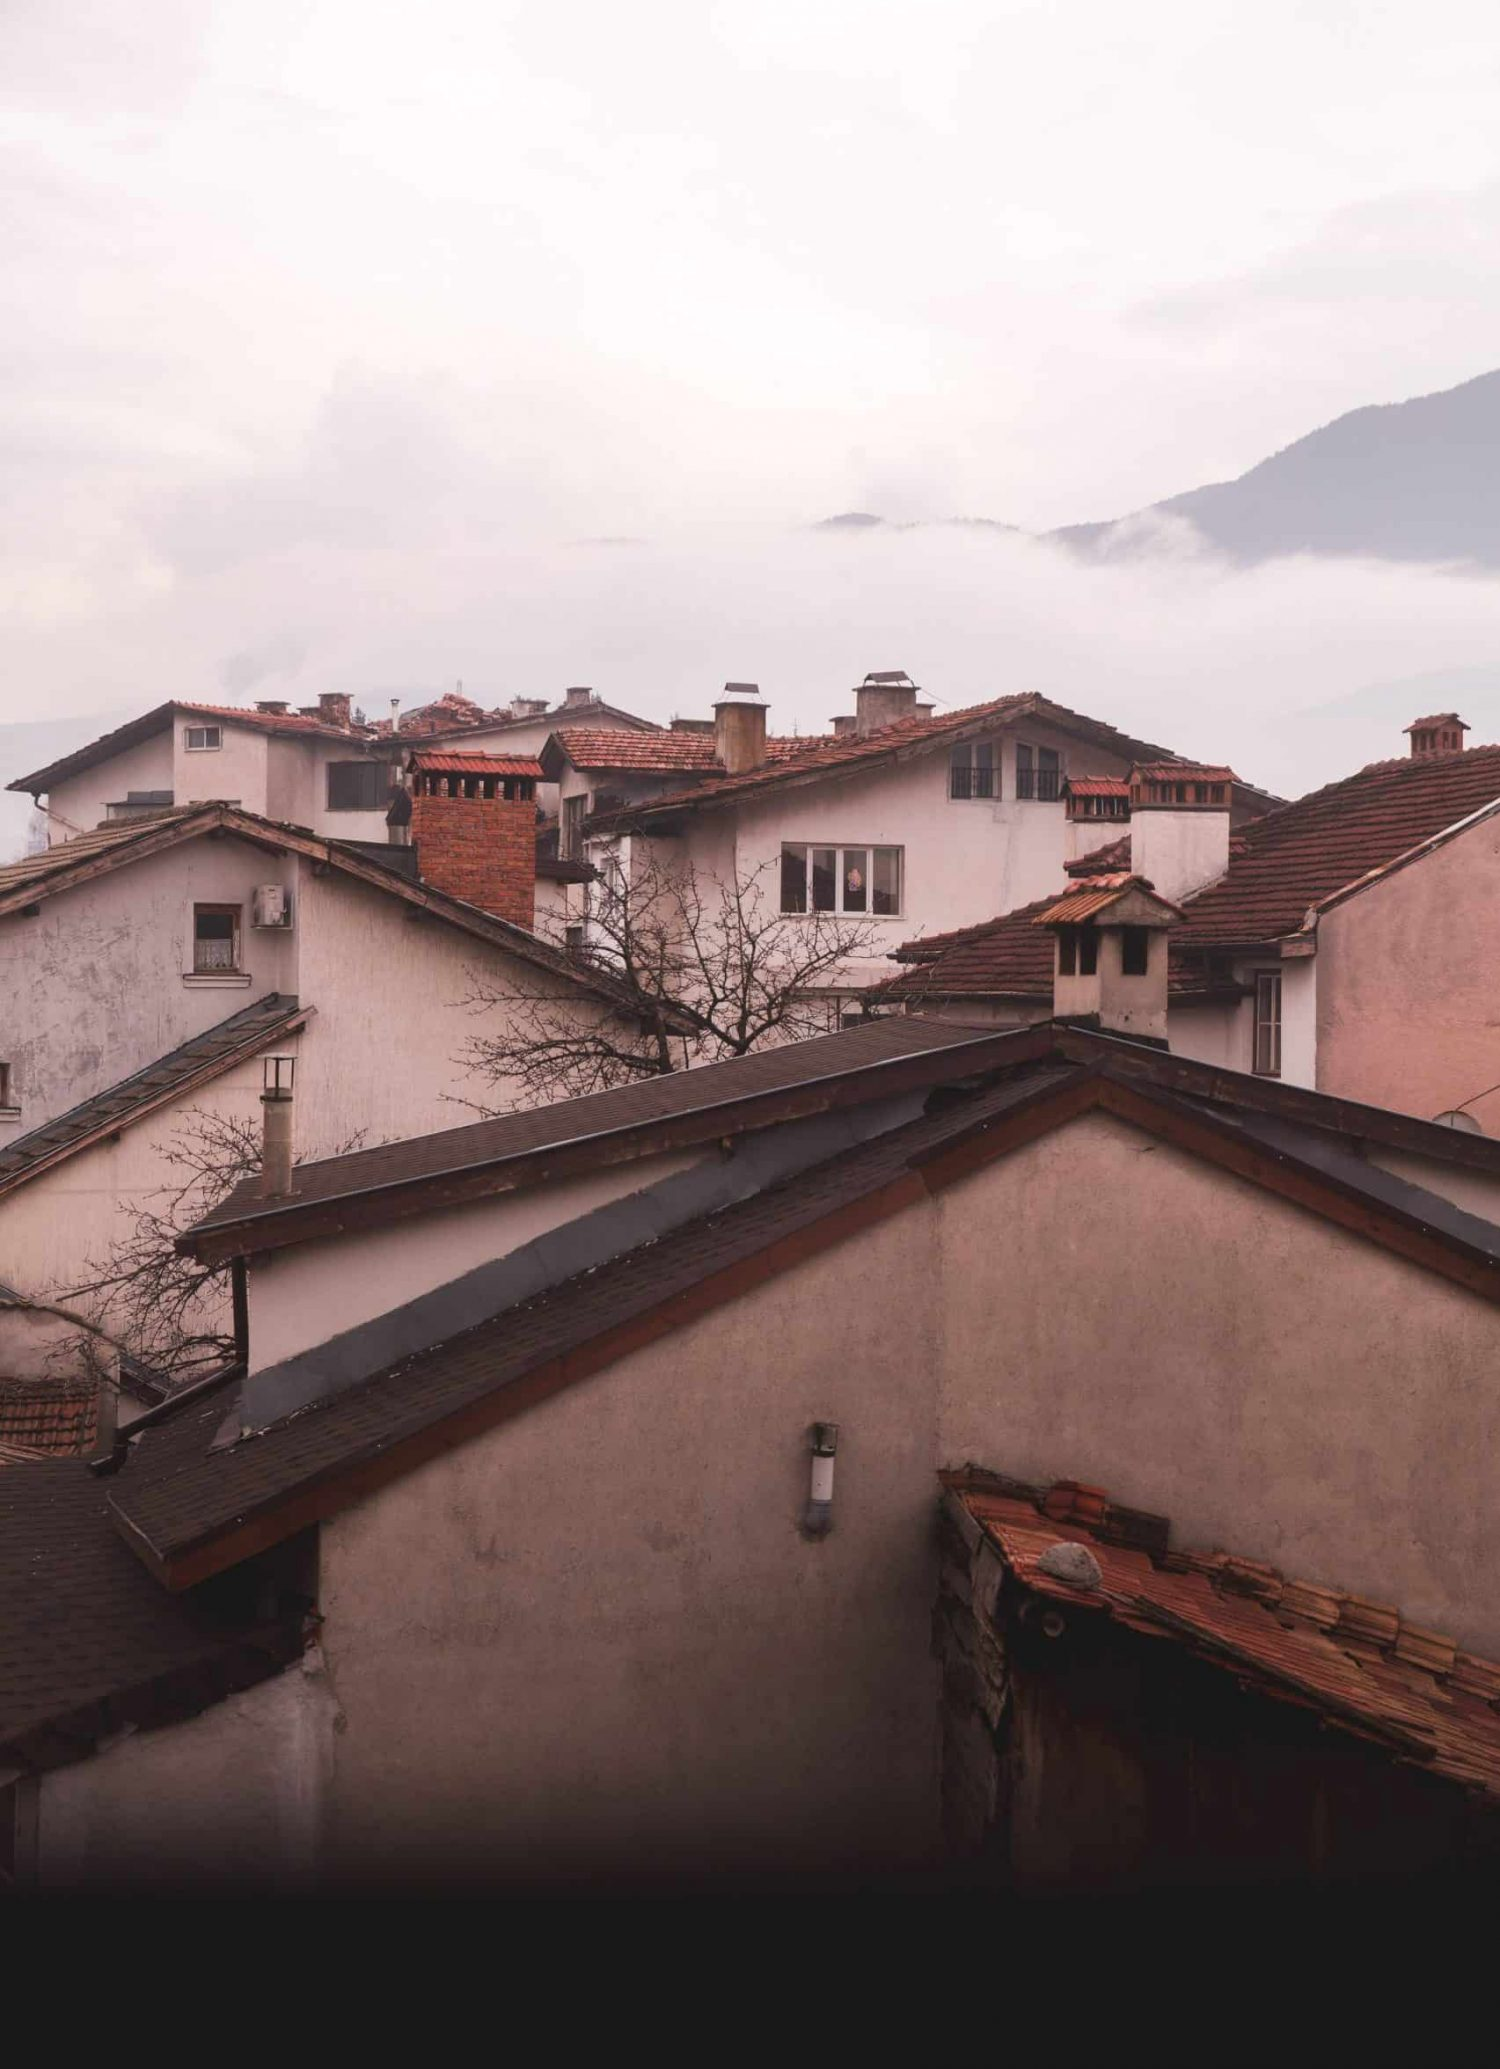 Bansko, Bulgaria is one of my favorite destinations of 2019, and a great place to think about visiting in 2020!